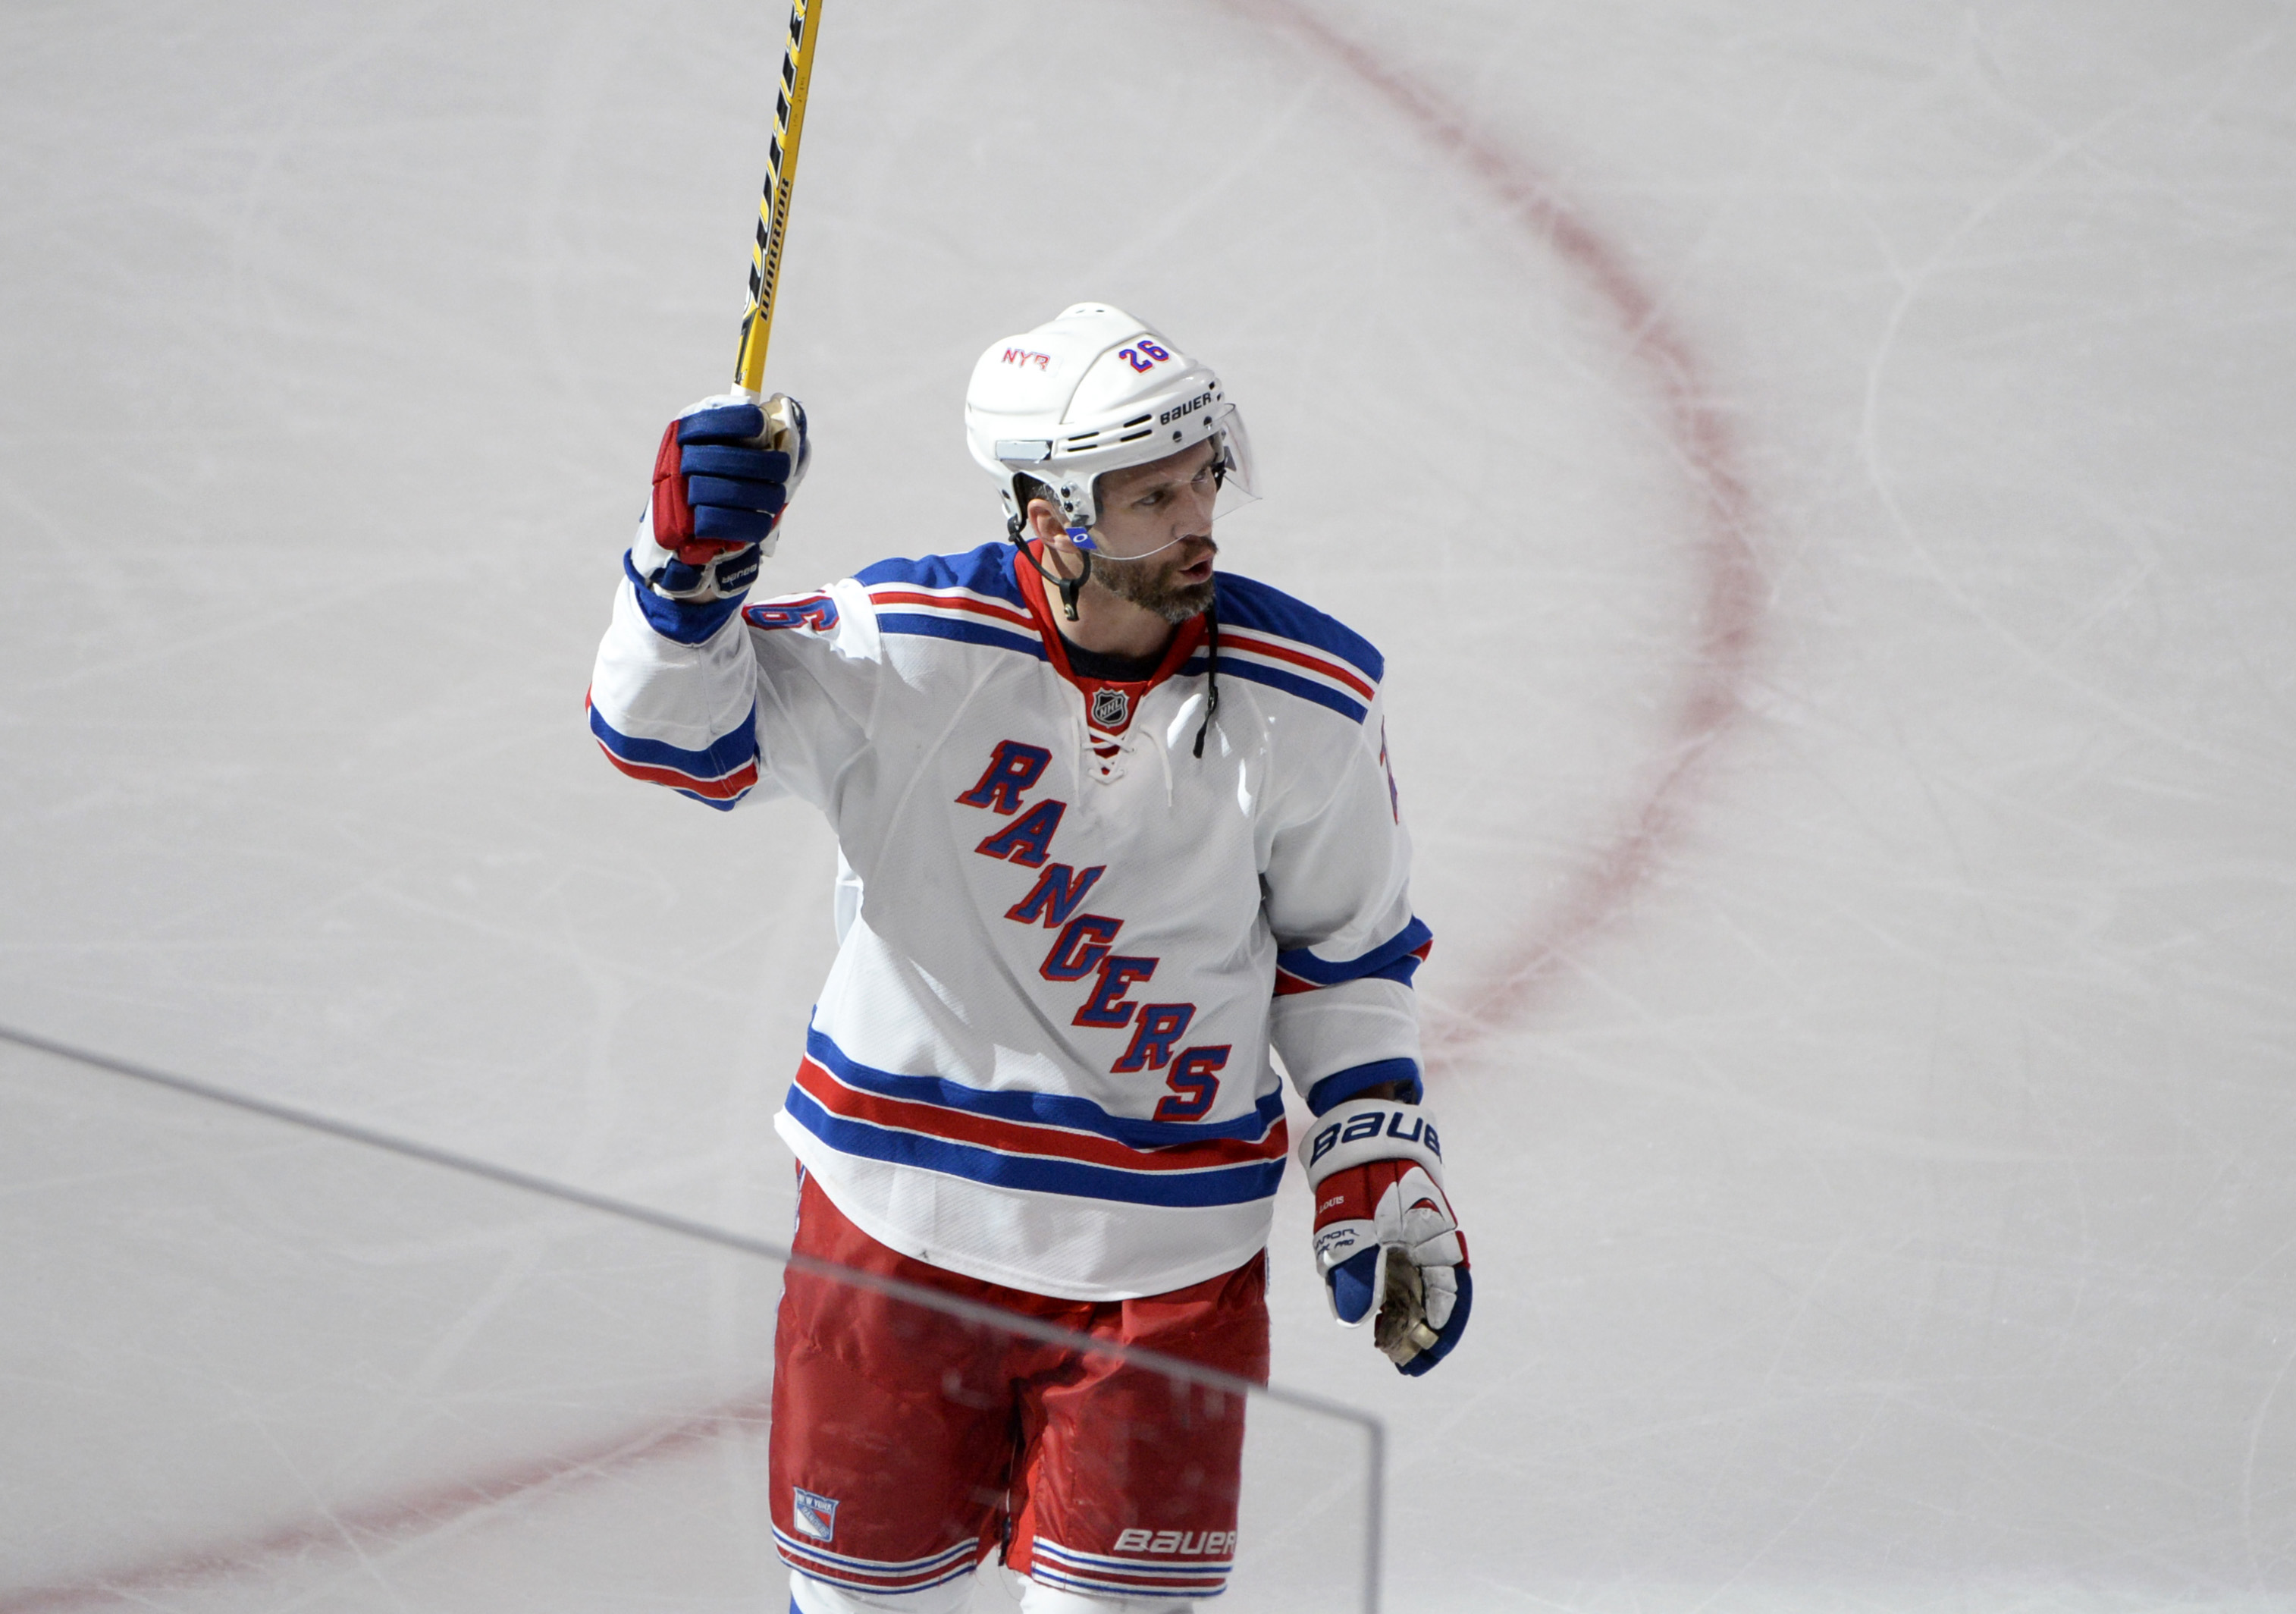 7917821-nhl-stanley-cup-playoffs-new-york-rangers-at-montreal-canadiens